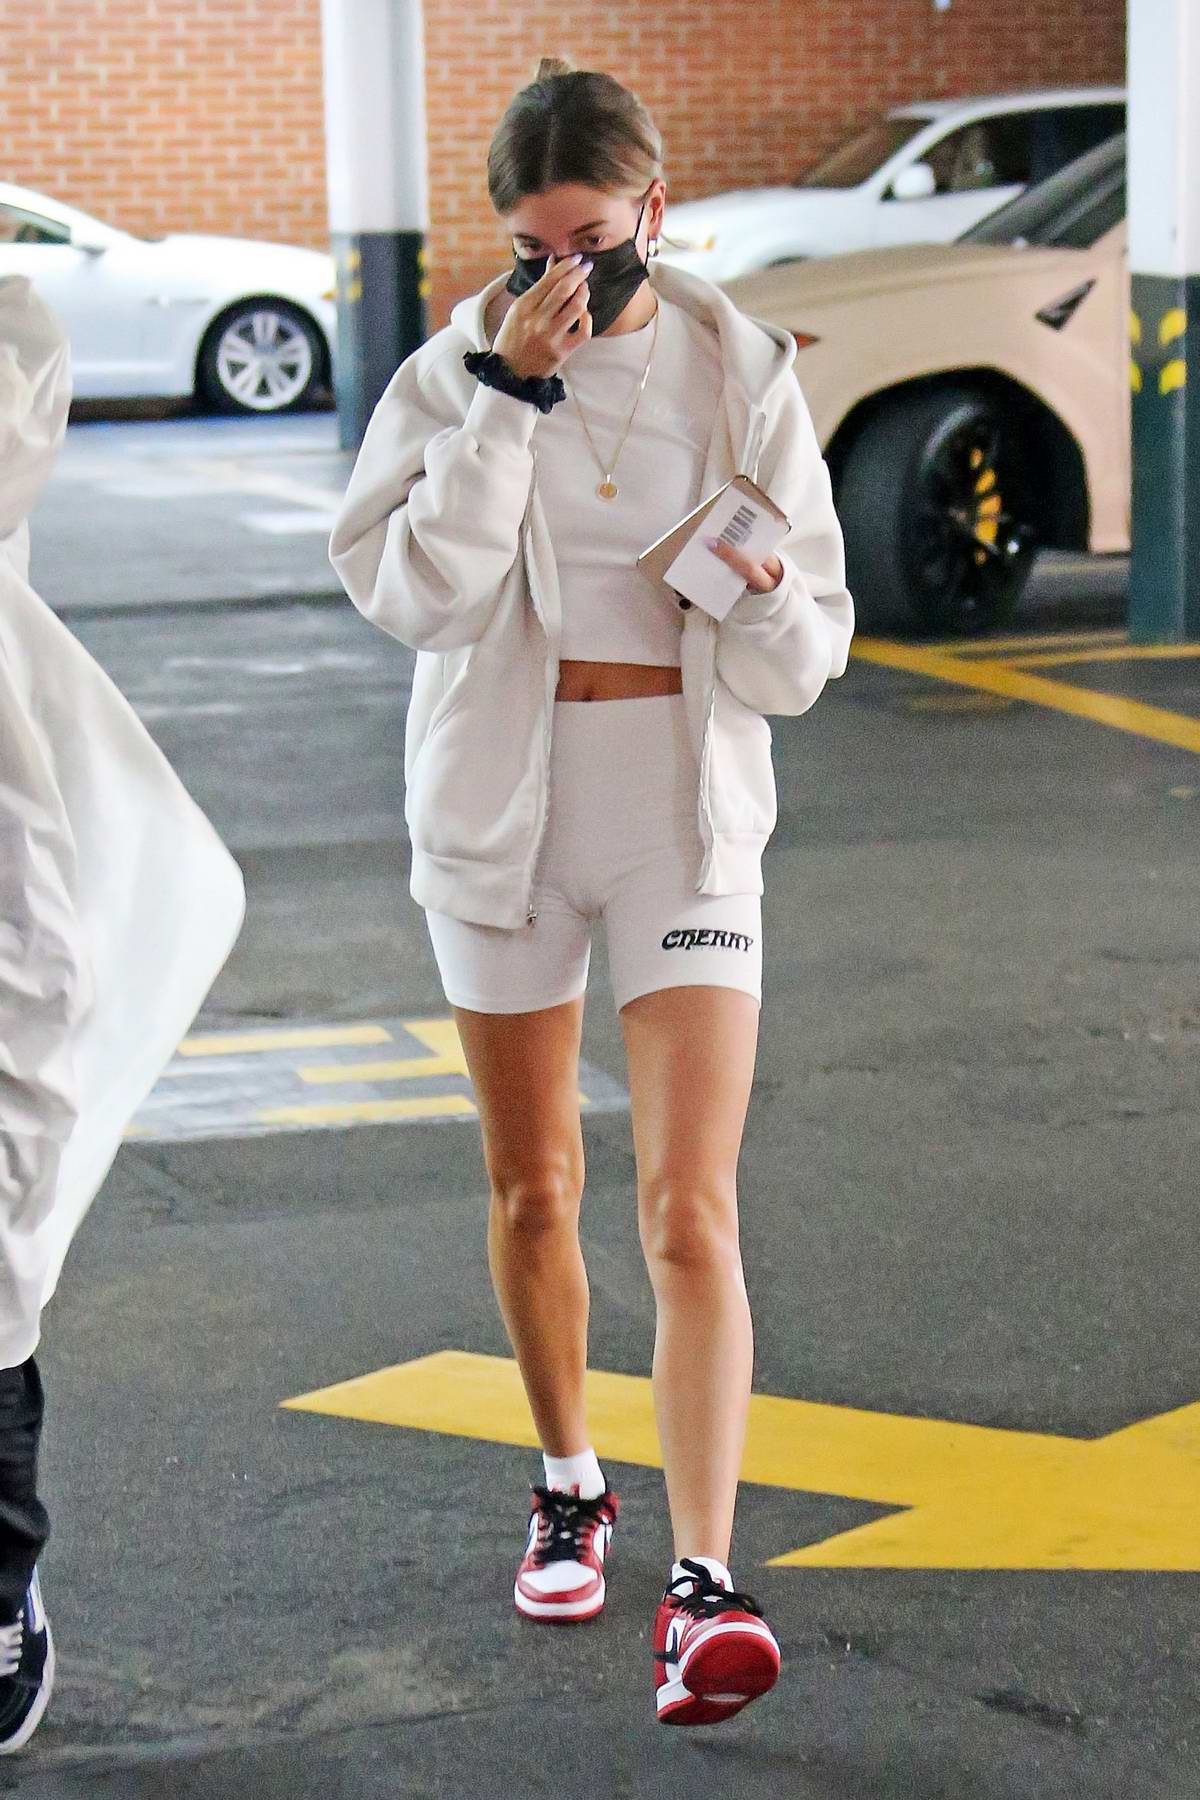 Hailey Bieber flashes her toned abs and legs while visiting a medical building in Beverly Hills, California